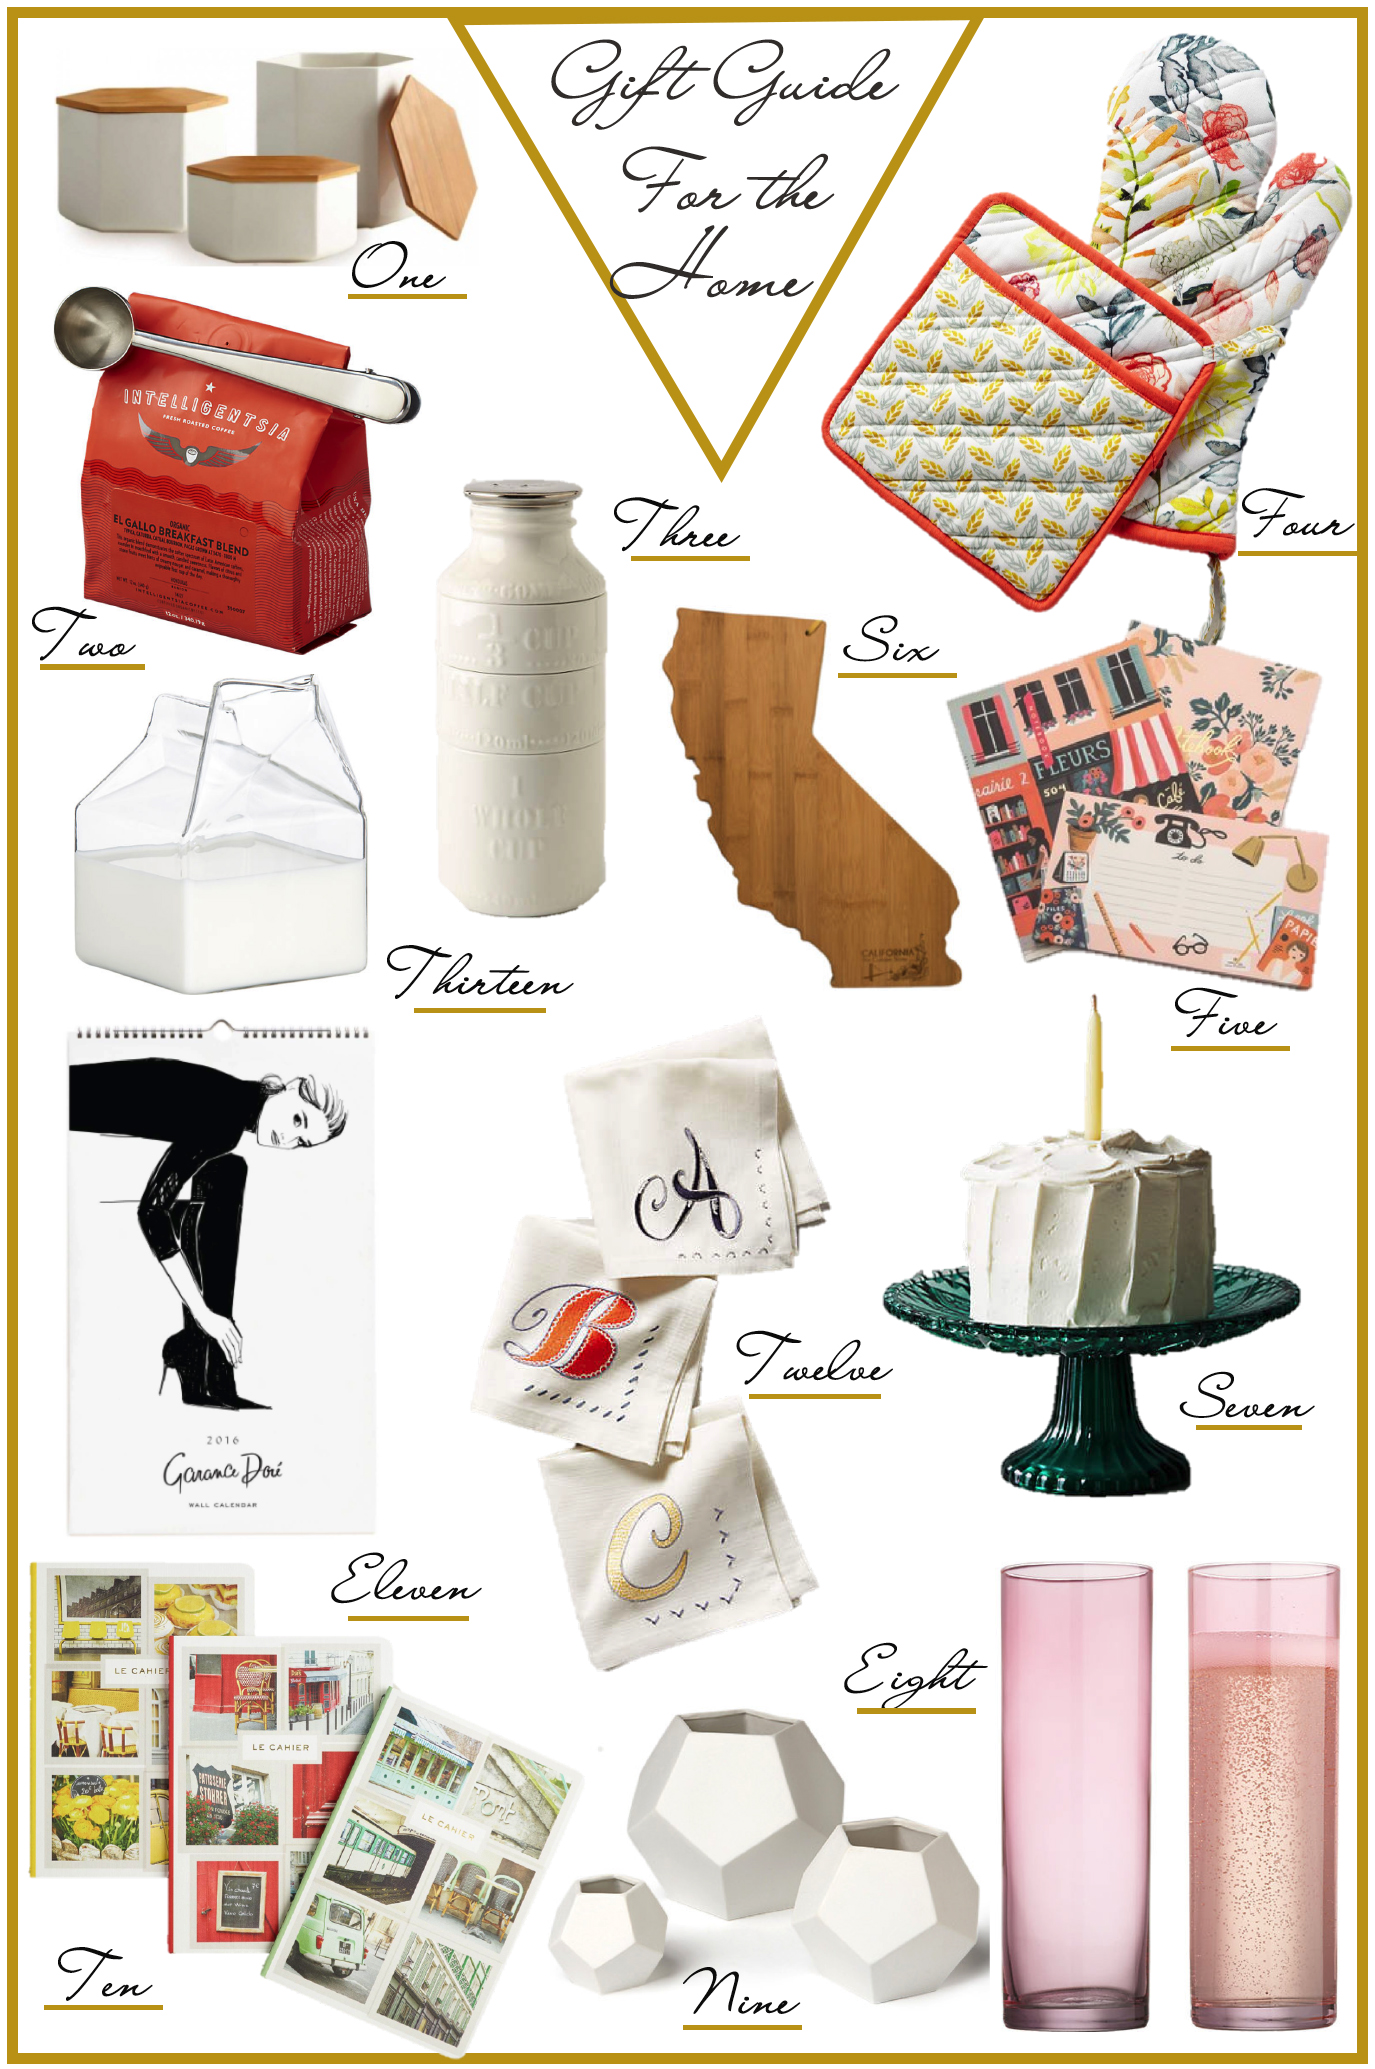 giftguidehome1